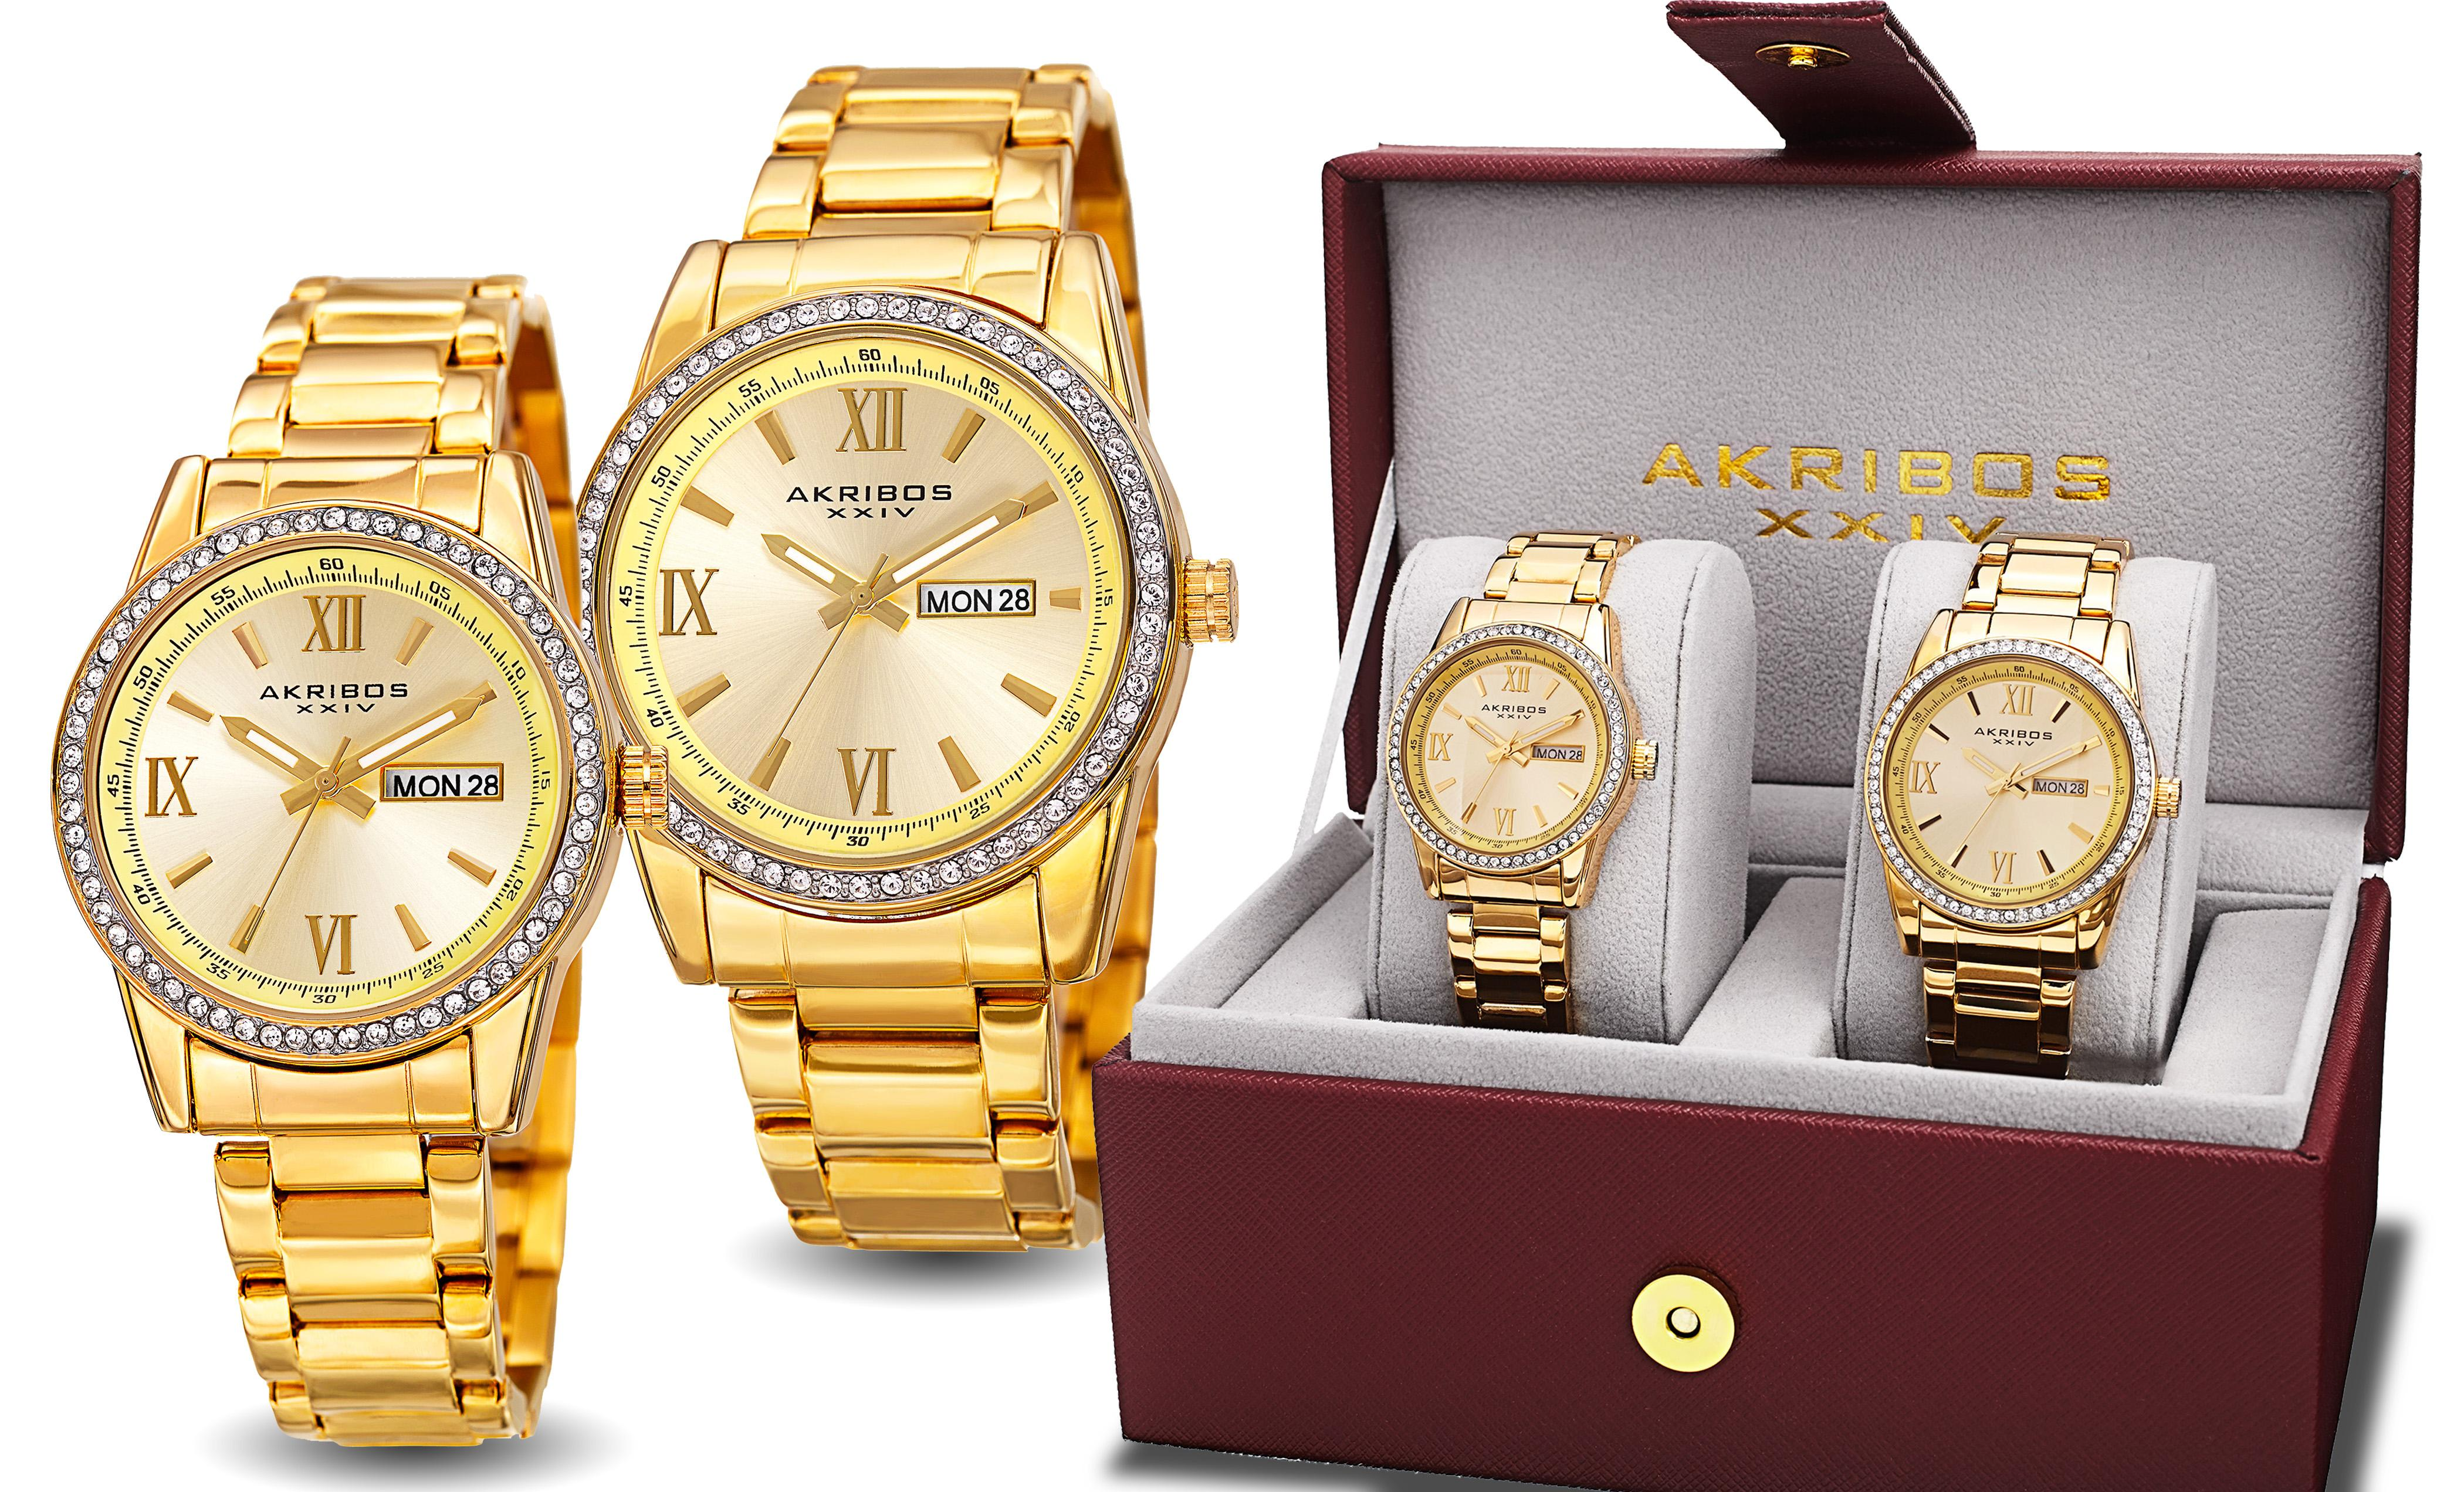 8 Best Matching His and Hers Watches For Couples | Kenya Crazy Media